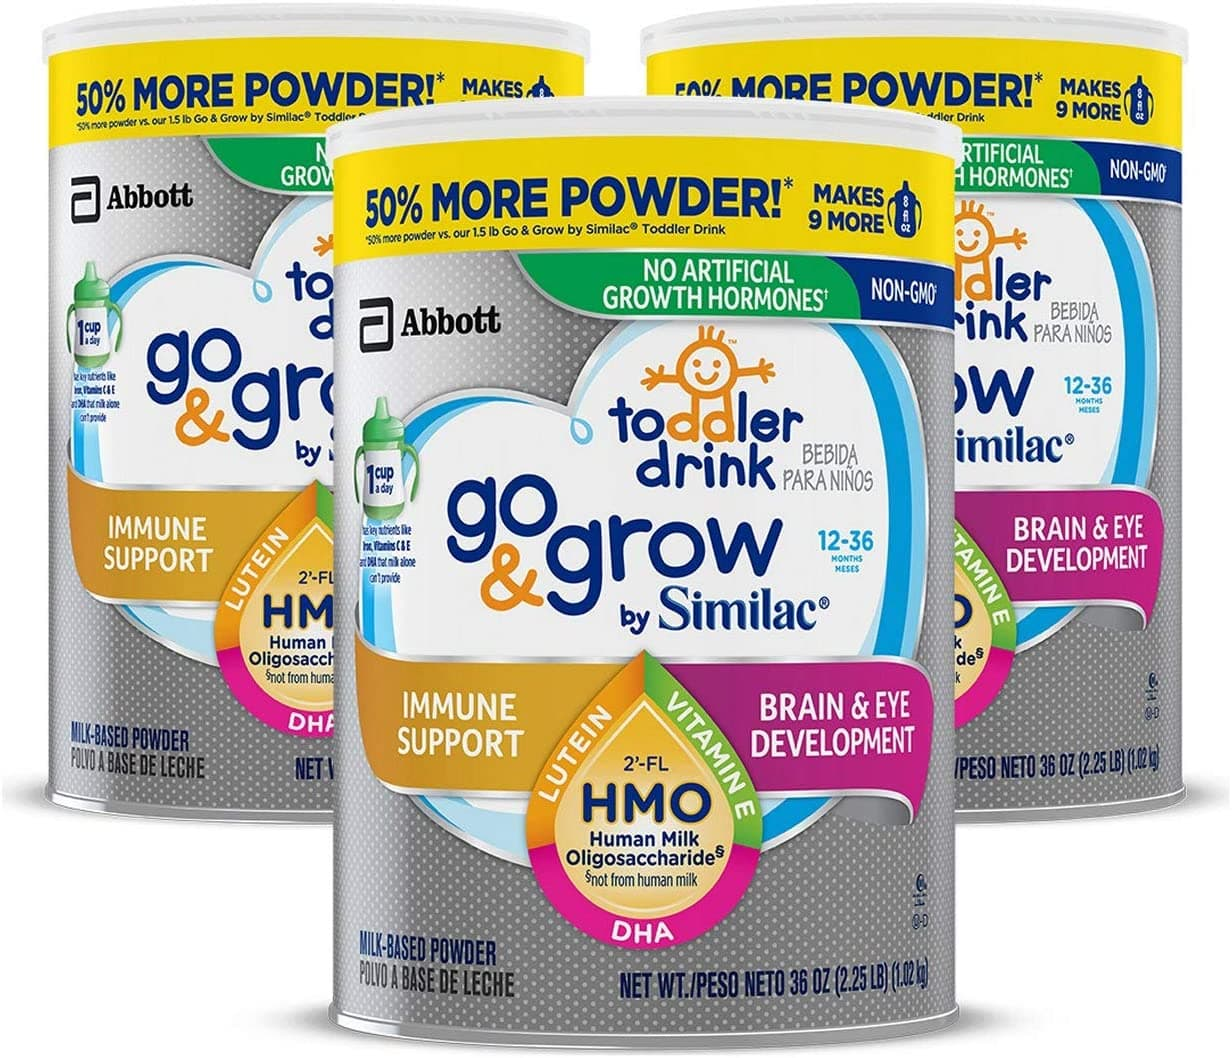 Amazon.com: Go & Grow by Similac Toddler Drink, 3 Cans $38.45